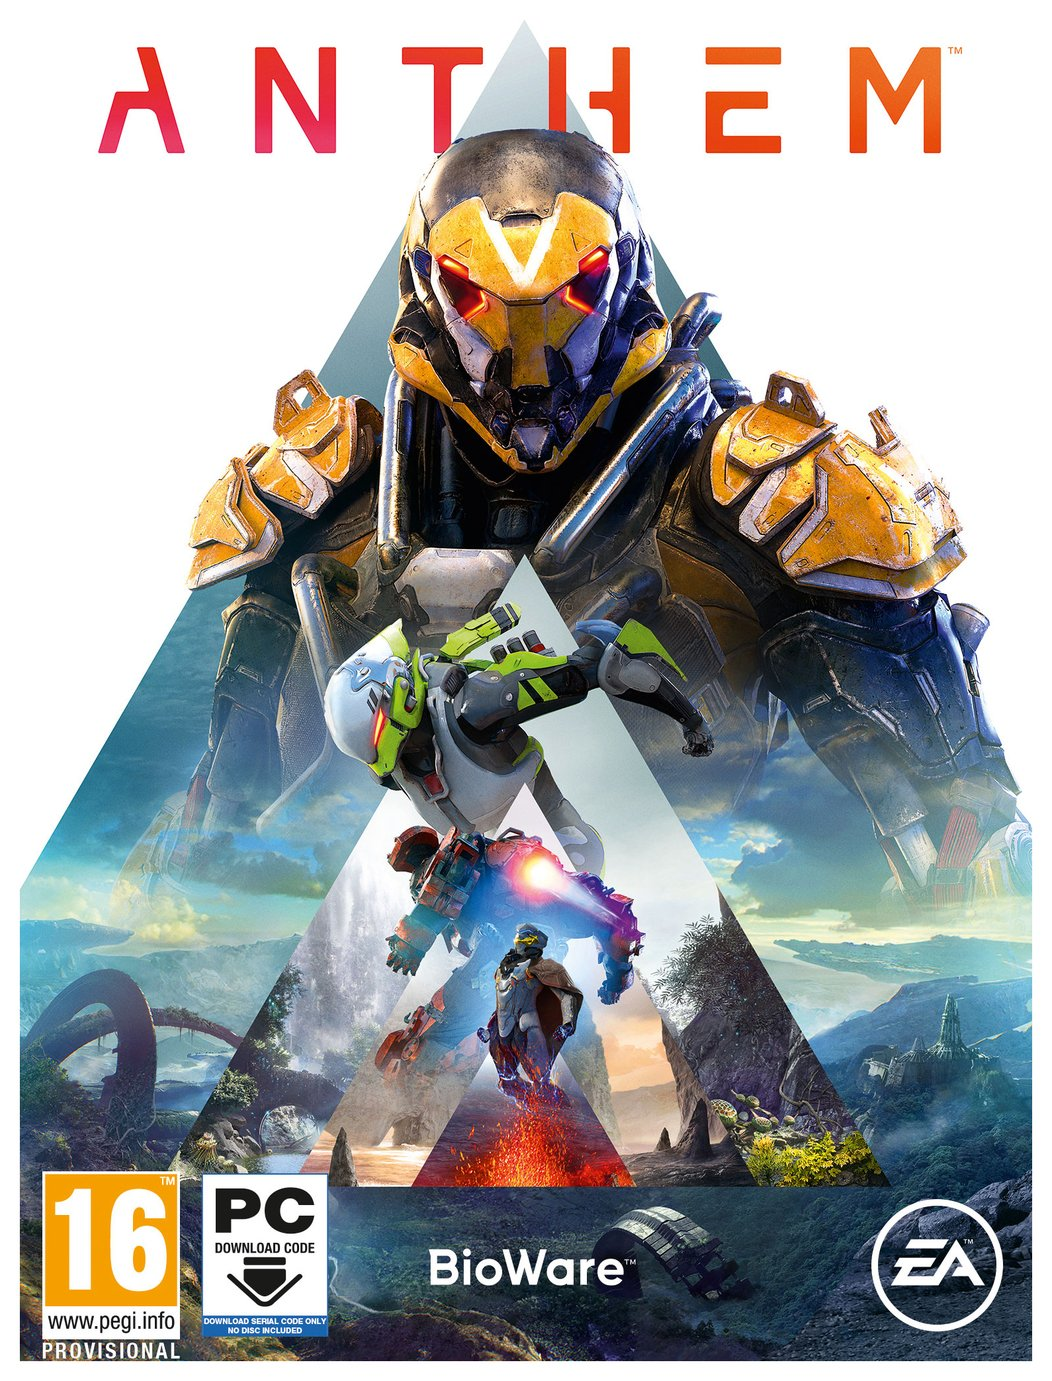 Anthem (PC Code in Box) Best Price and Cheapest